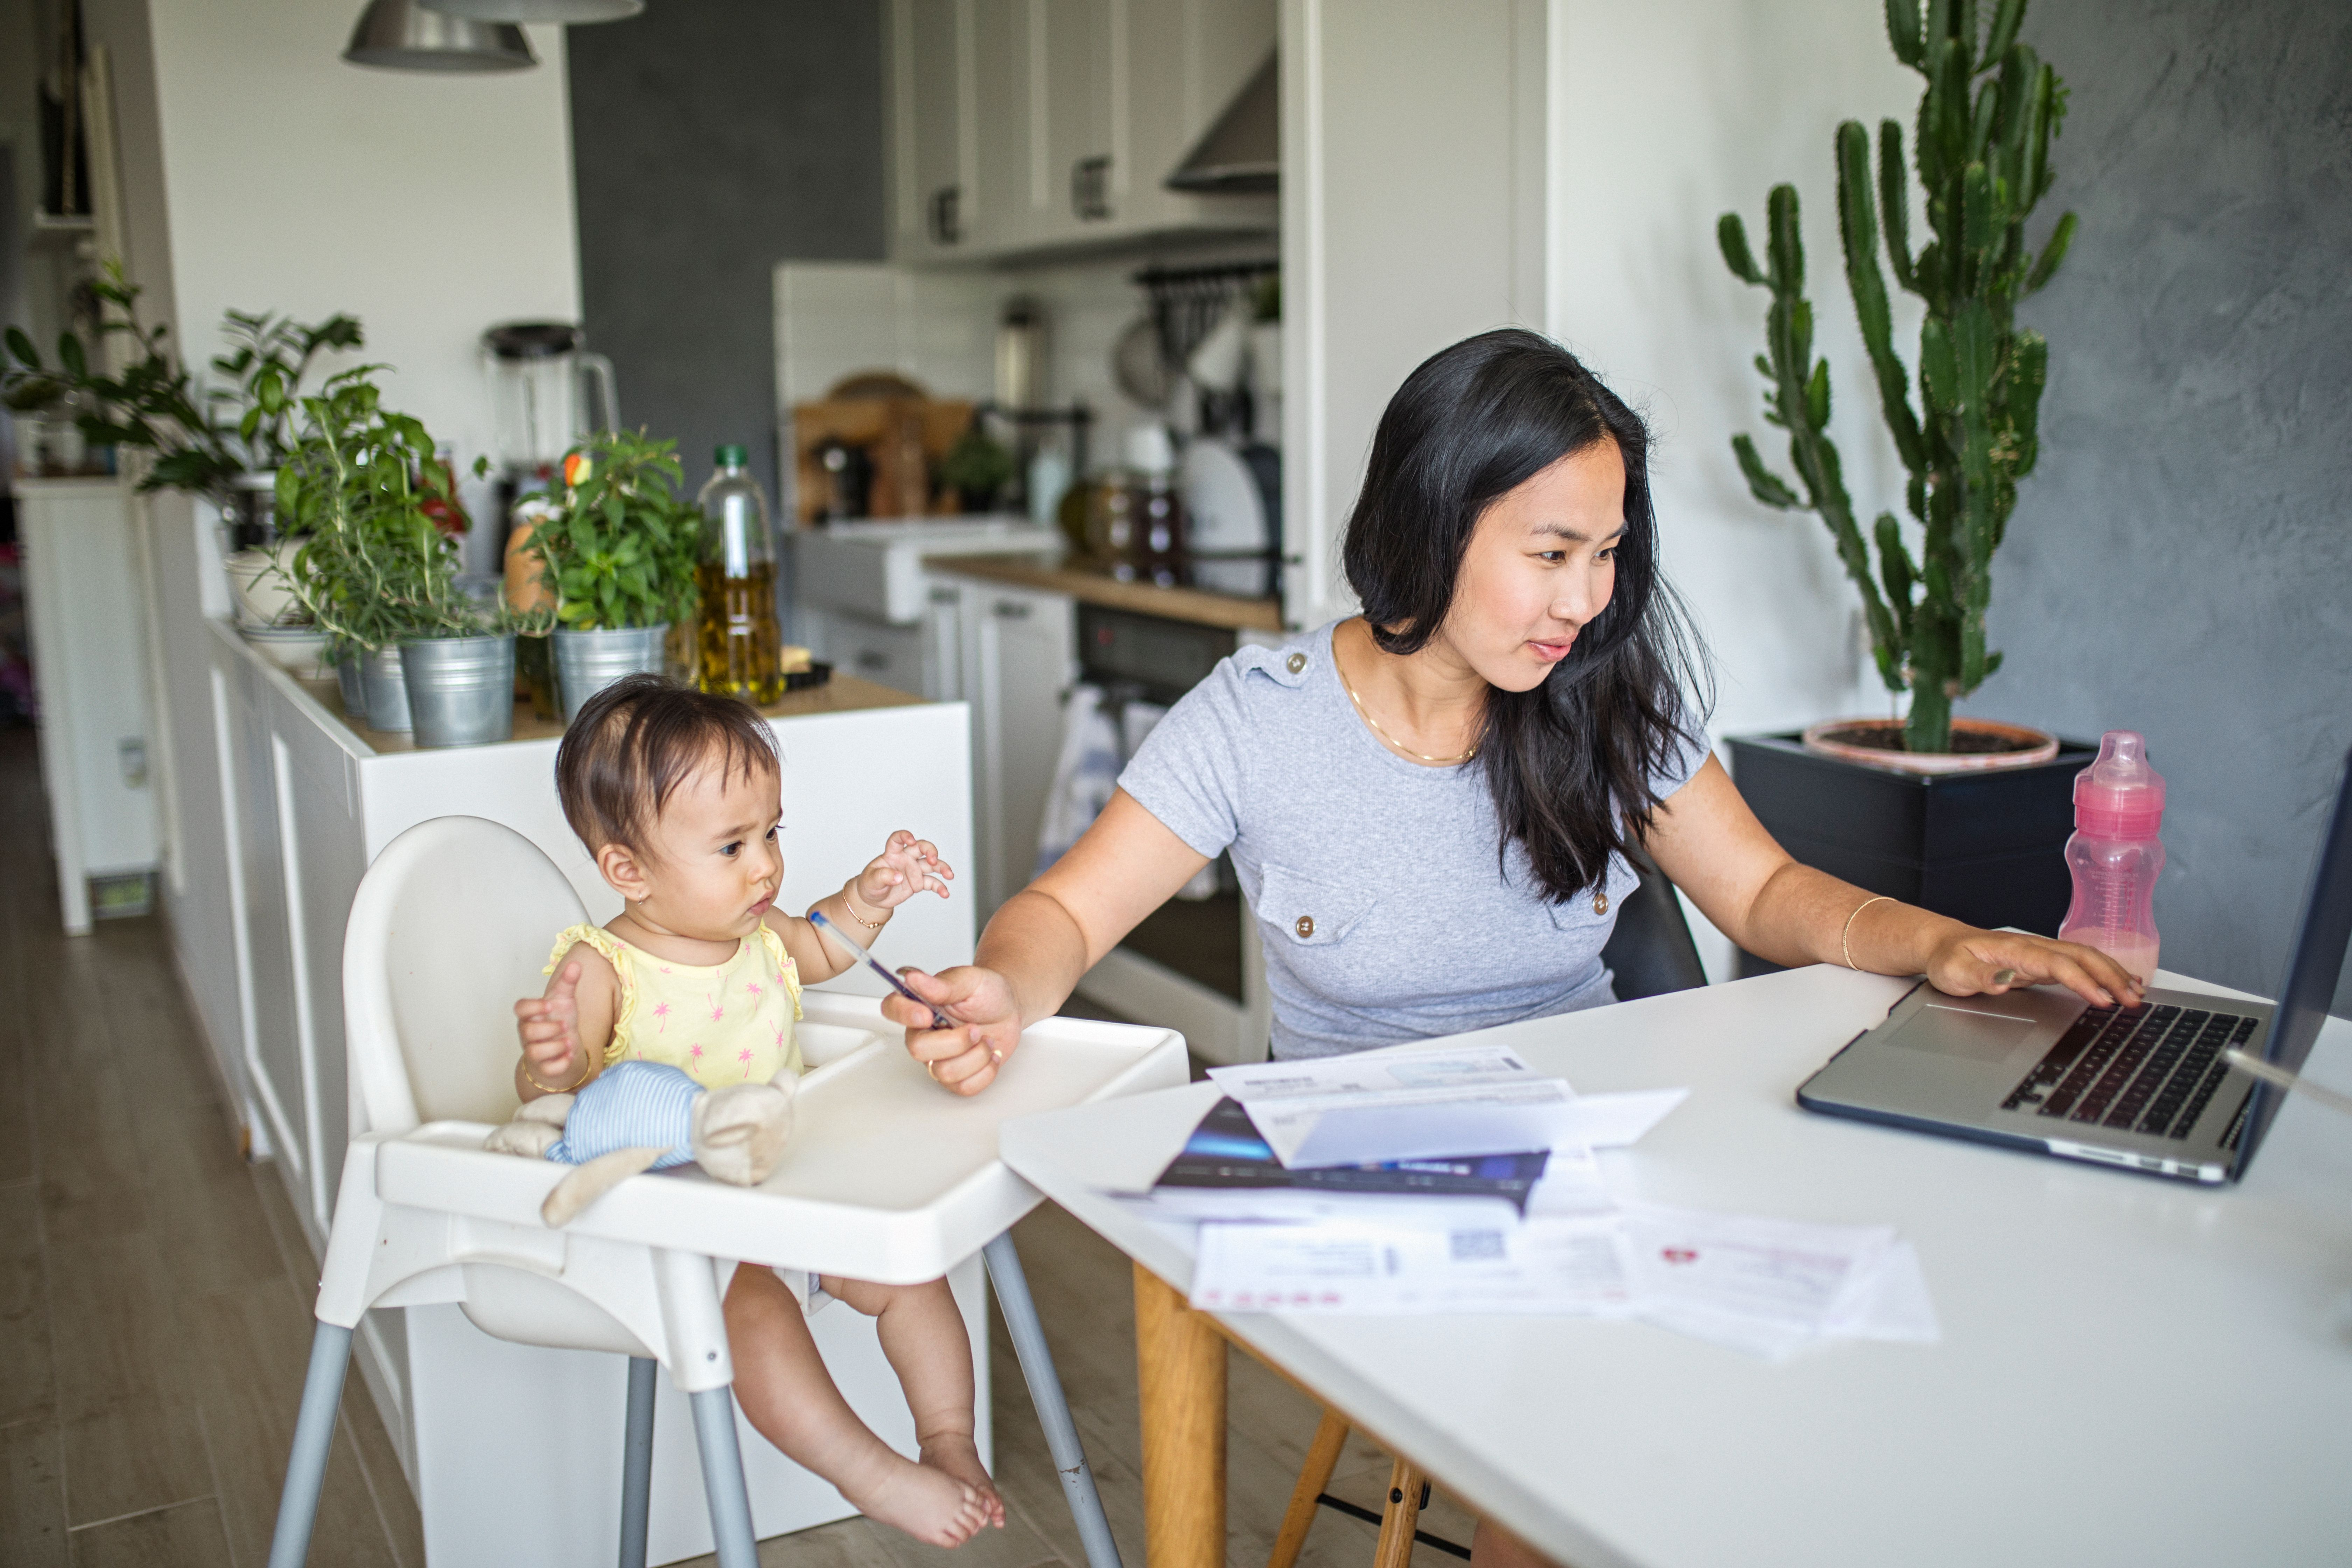 Woman working on a laptop while also feeding a child in a high chair